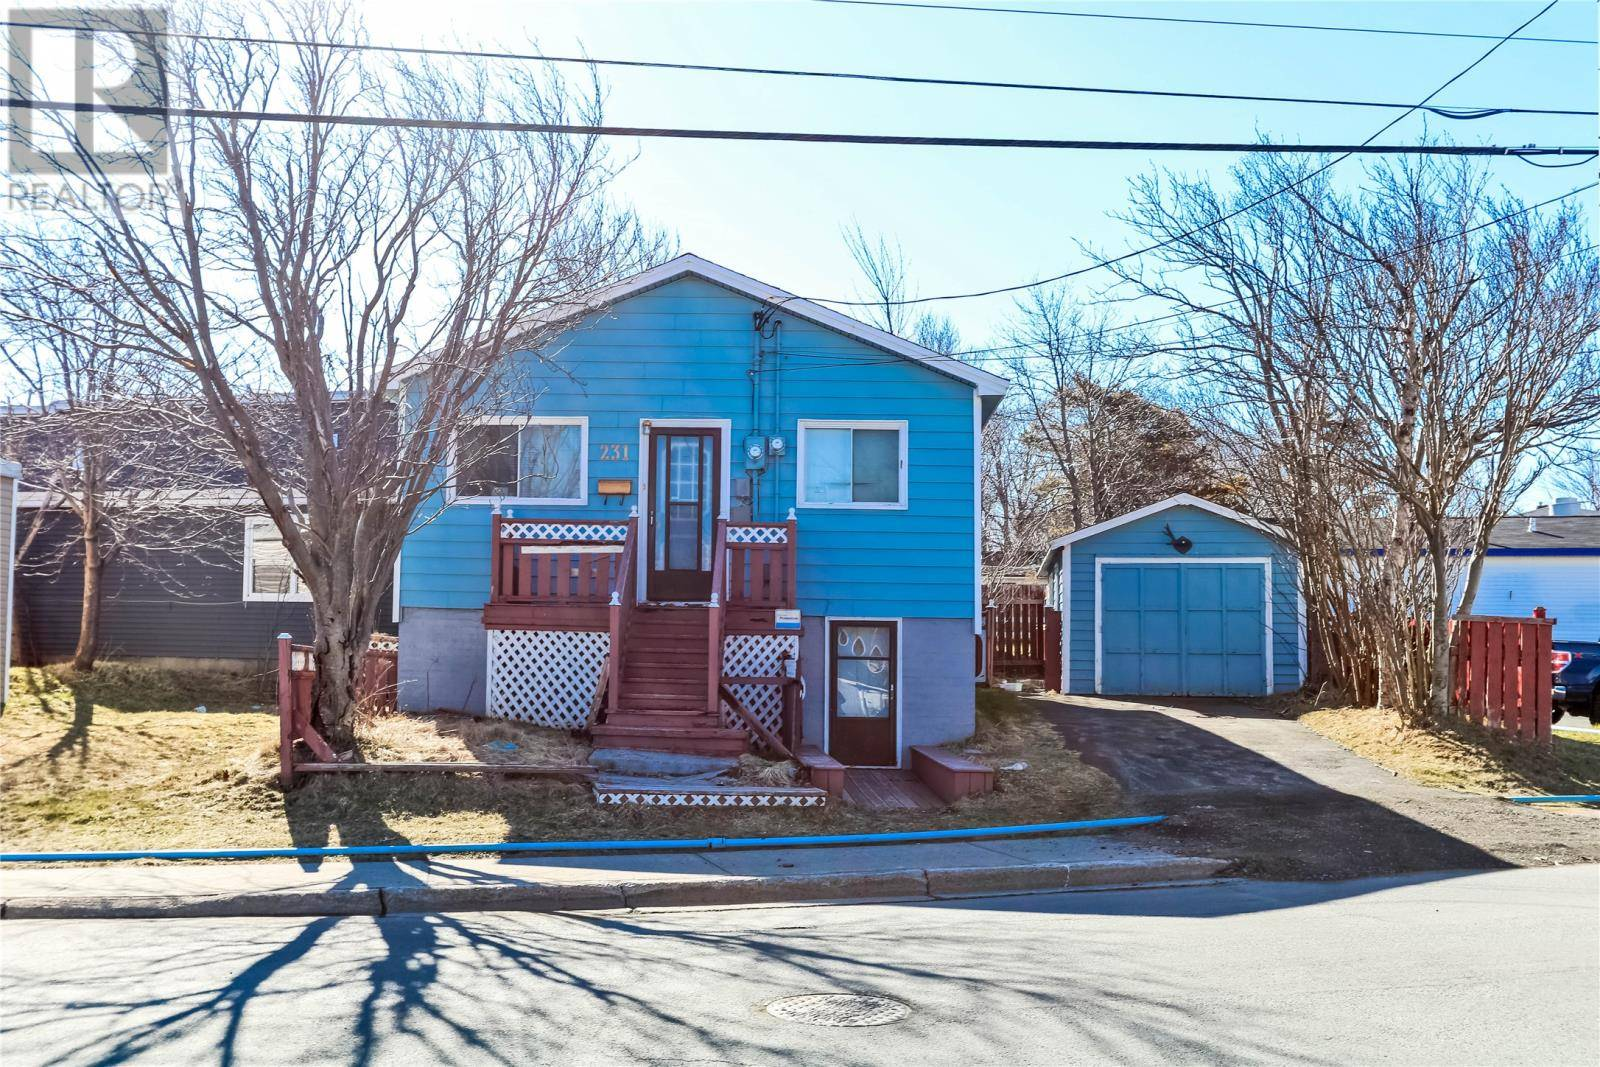 House for sale at 231 Empire Ave St. John's Newfoundland - MLS: 1202957